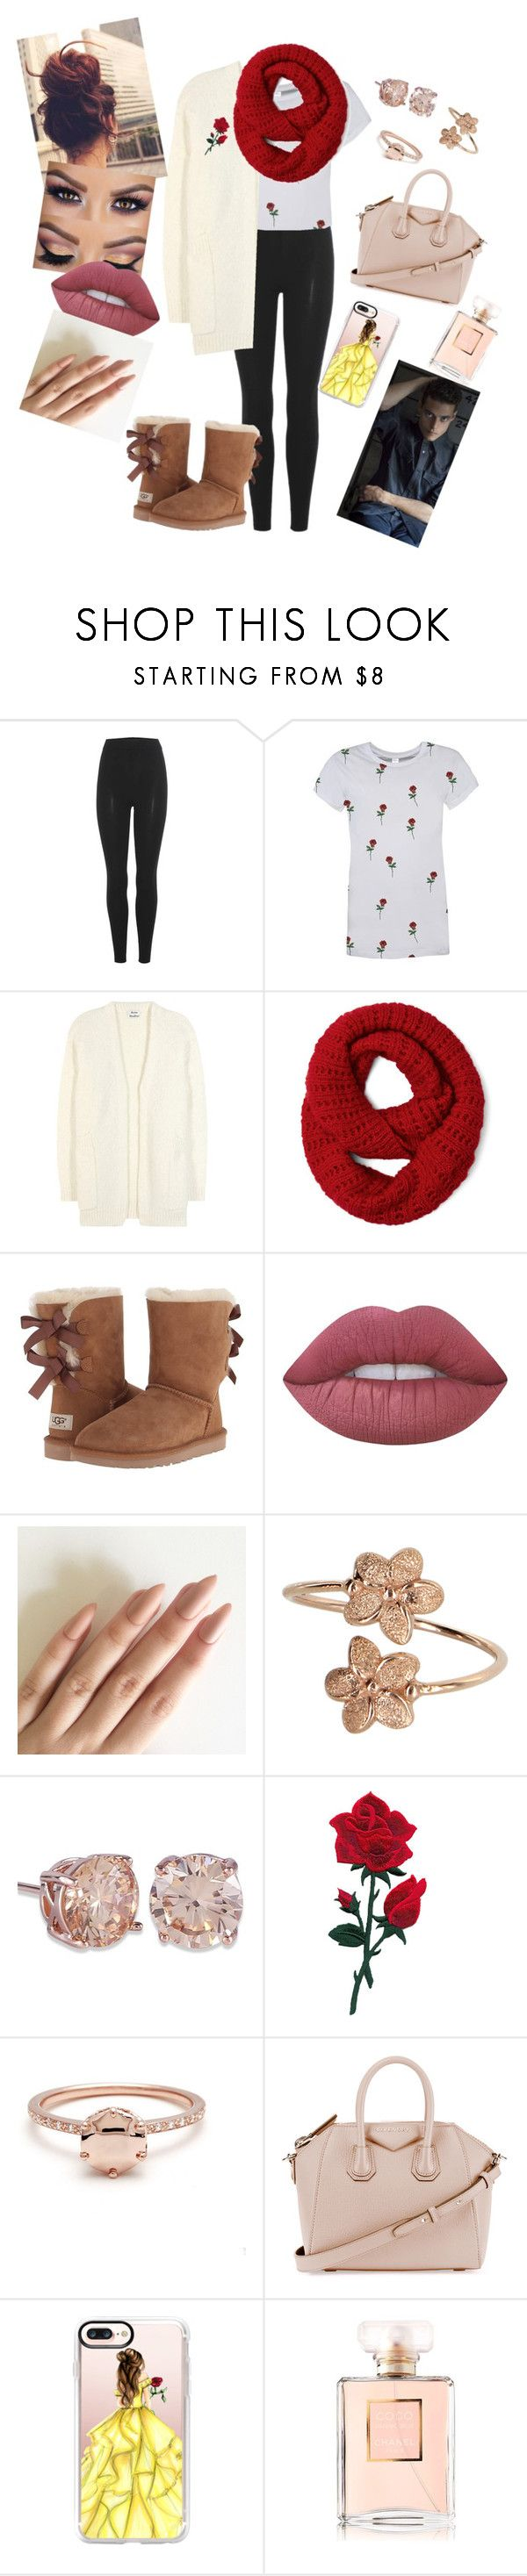 """""""Beauty and the beast w/ Rami"""" by annaconley on Polyvore featuring adidas Originals, Acne Studios, UGG Australia, M.O.T.D Cosmetics, Lime Crime, Givenchy, Casetify and Chanel"""